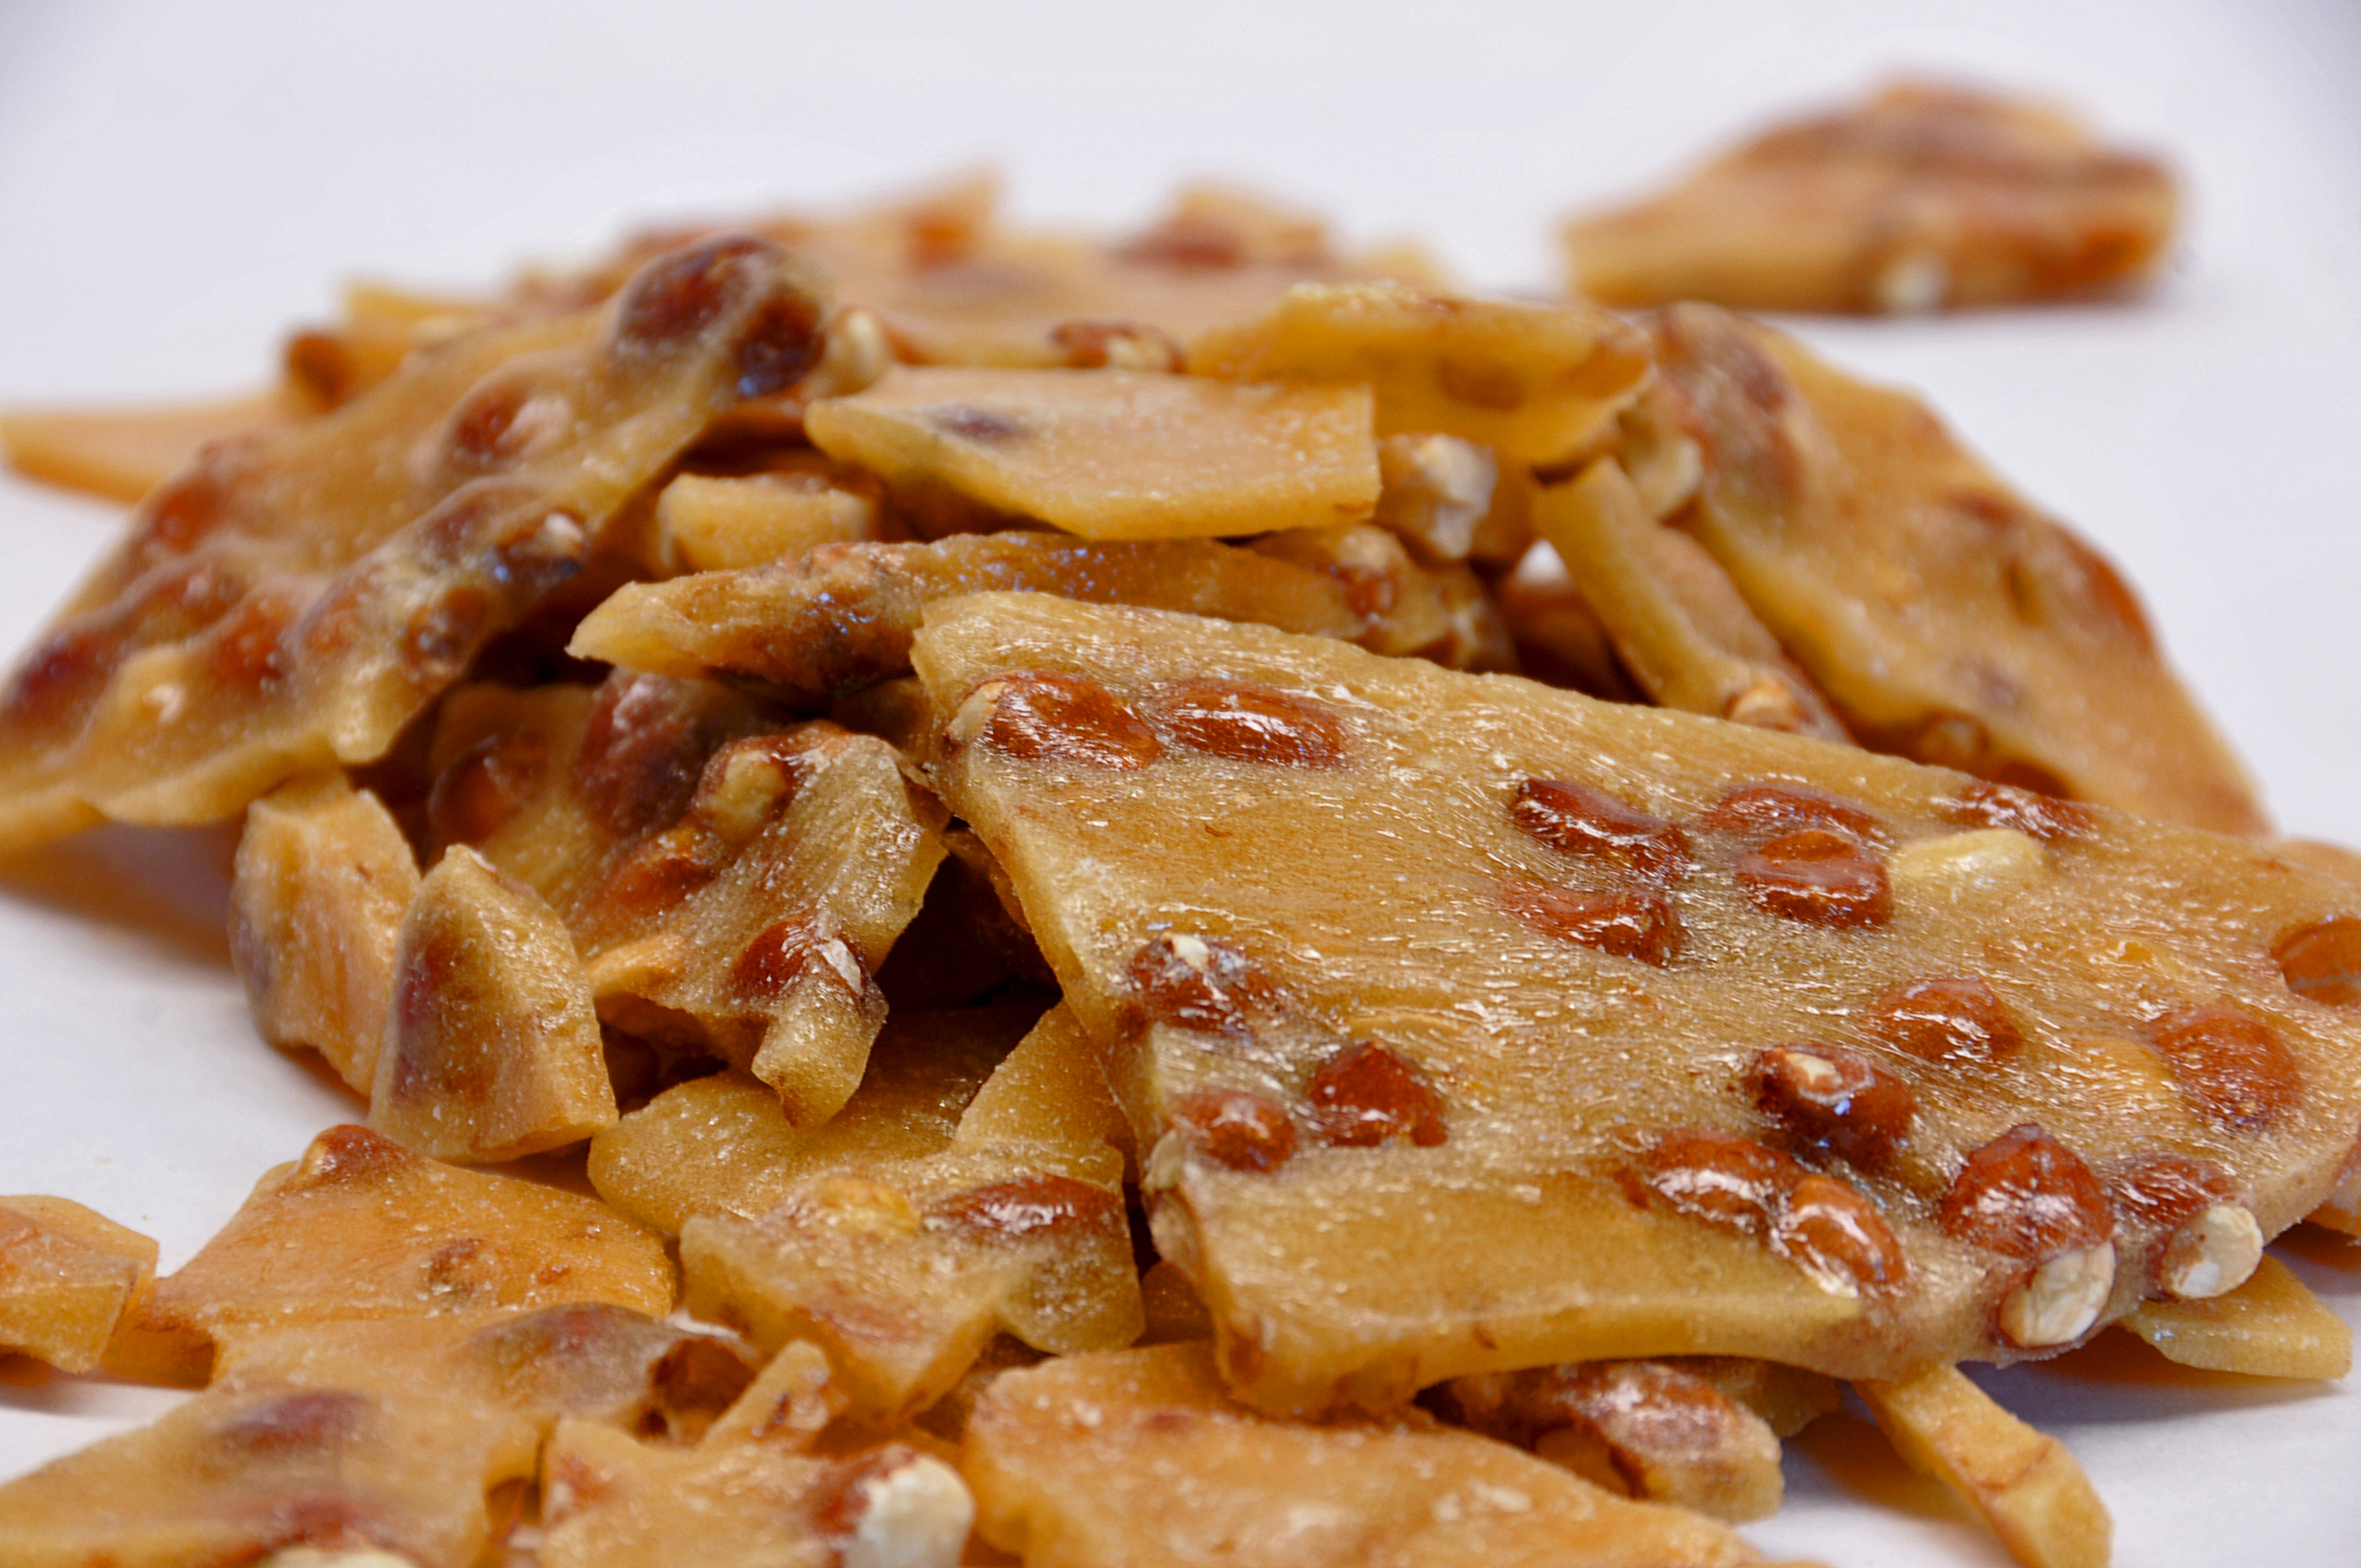 Peanut Brittle - Taste of Amish